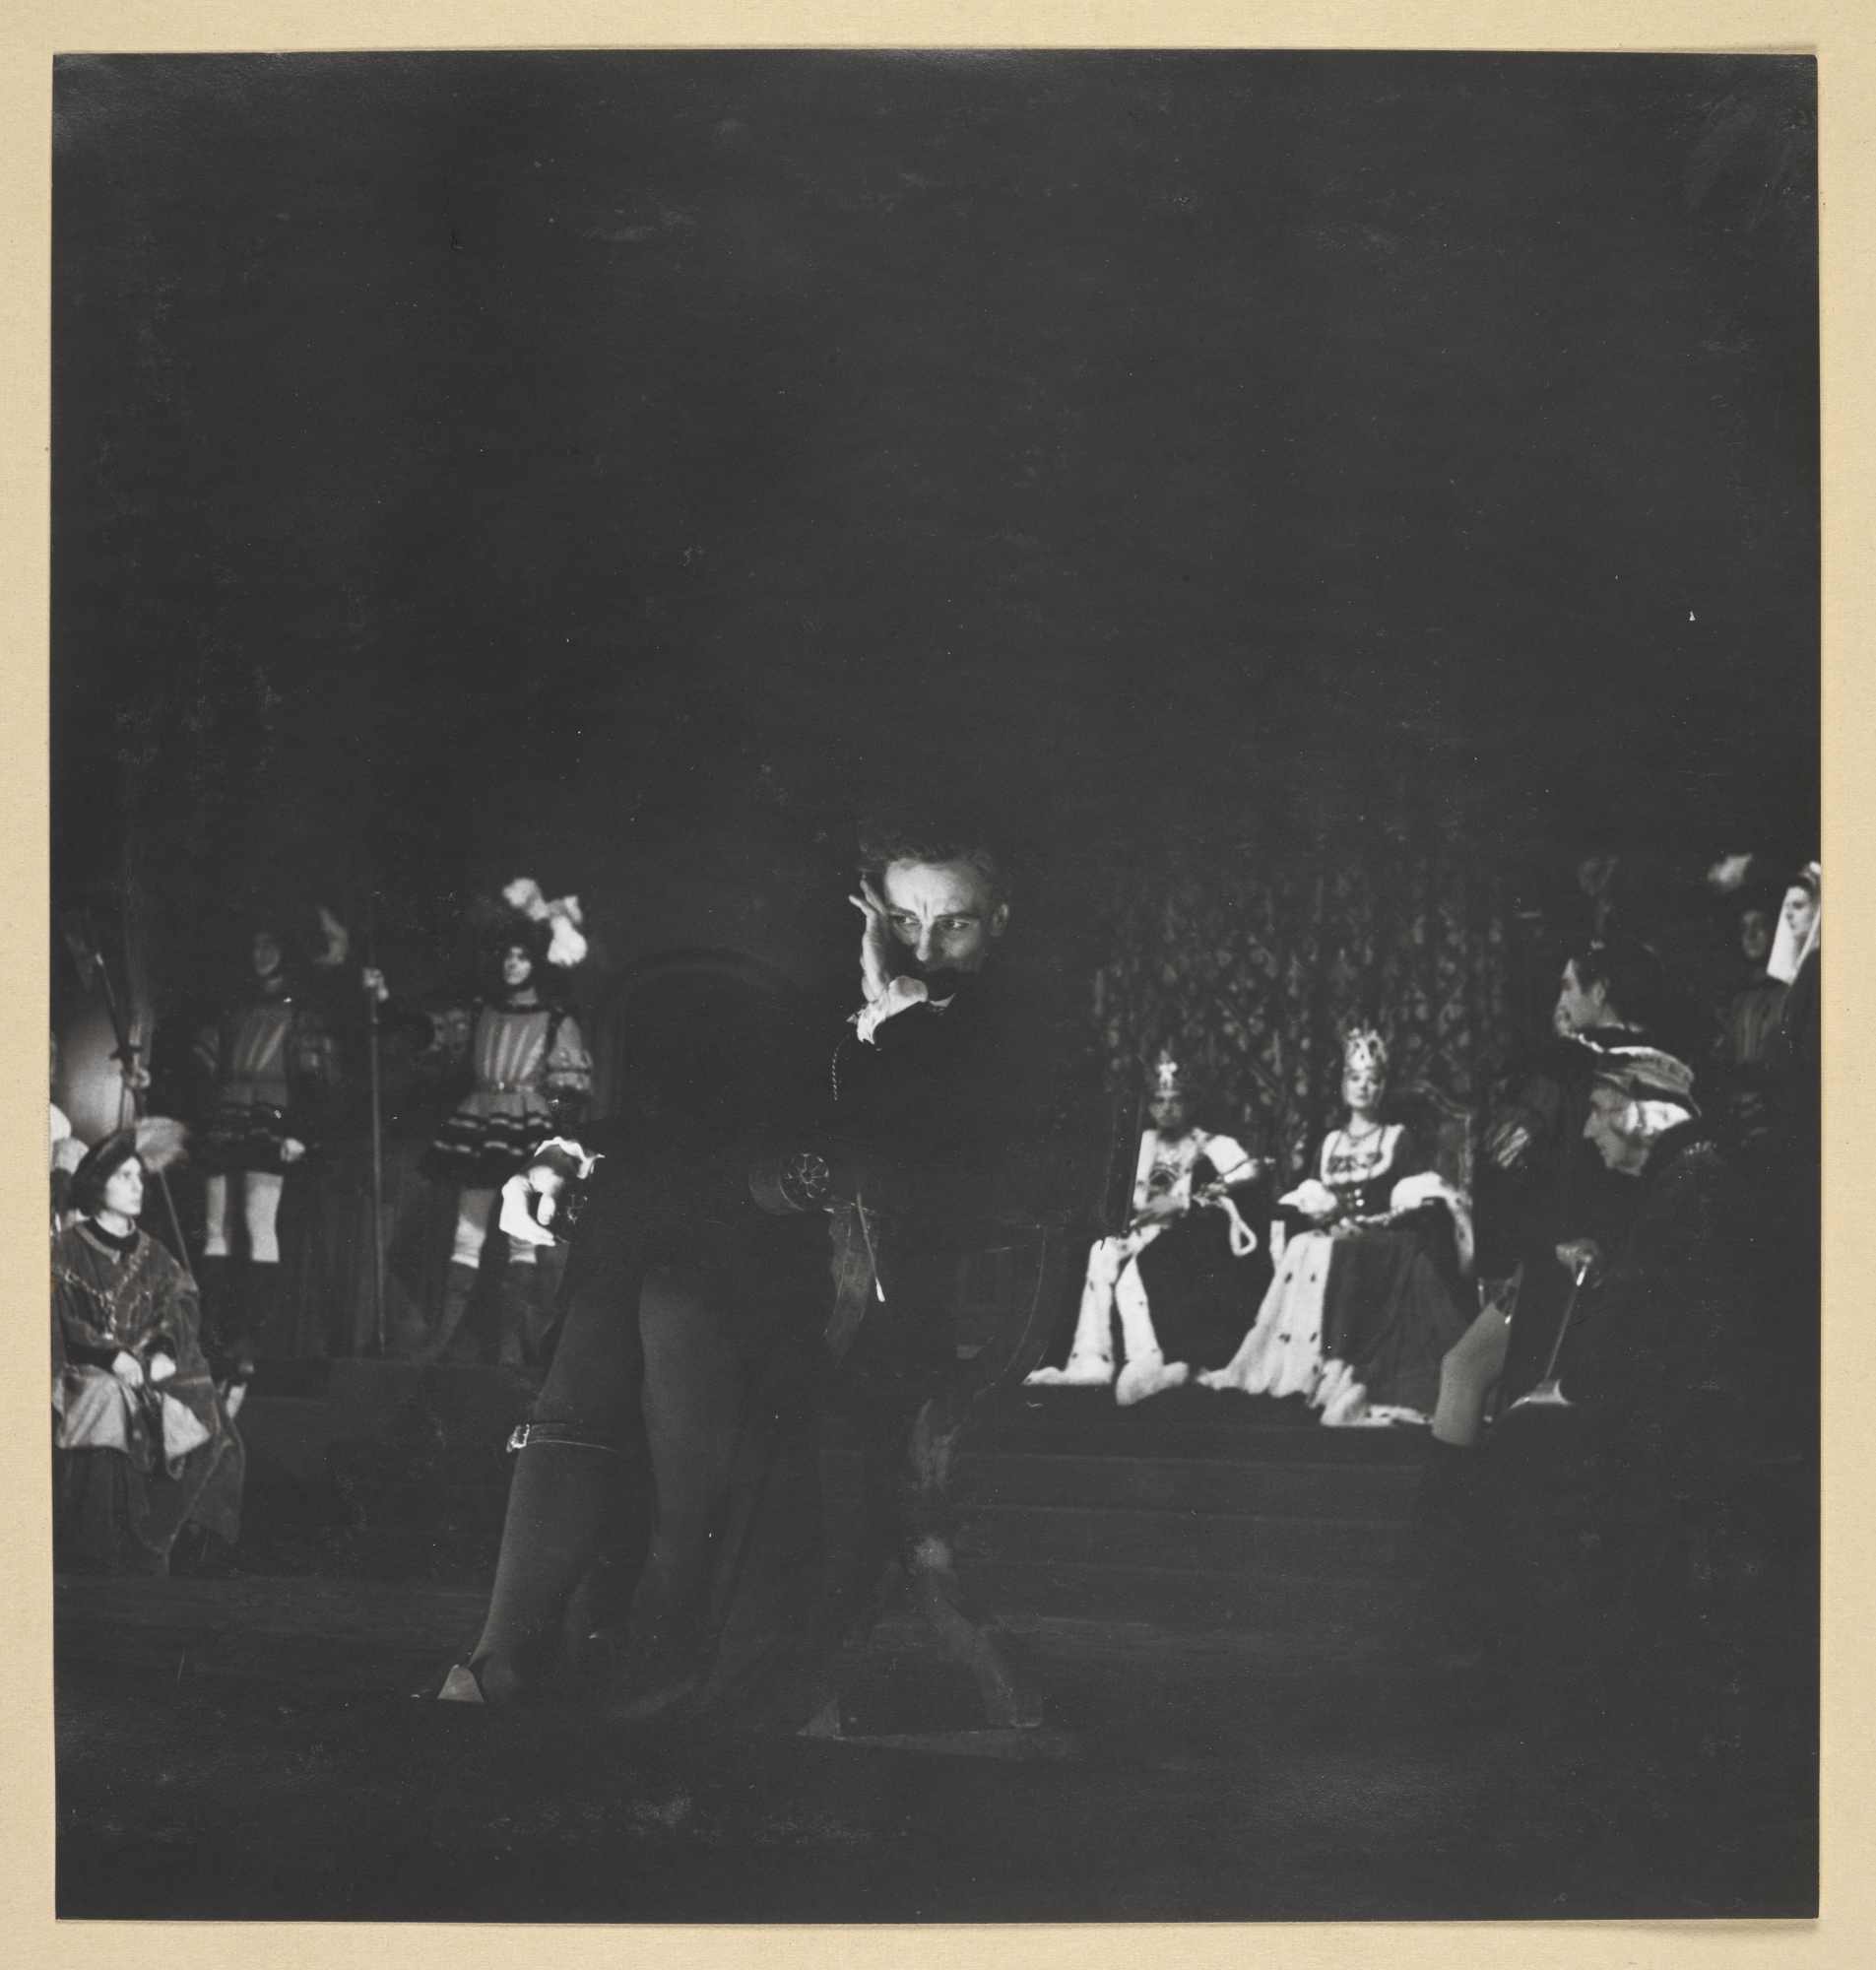 Photographs of John Gielgud and Peggy Ashcroft in Hamlet 1944